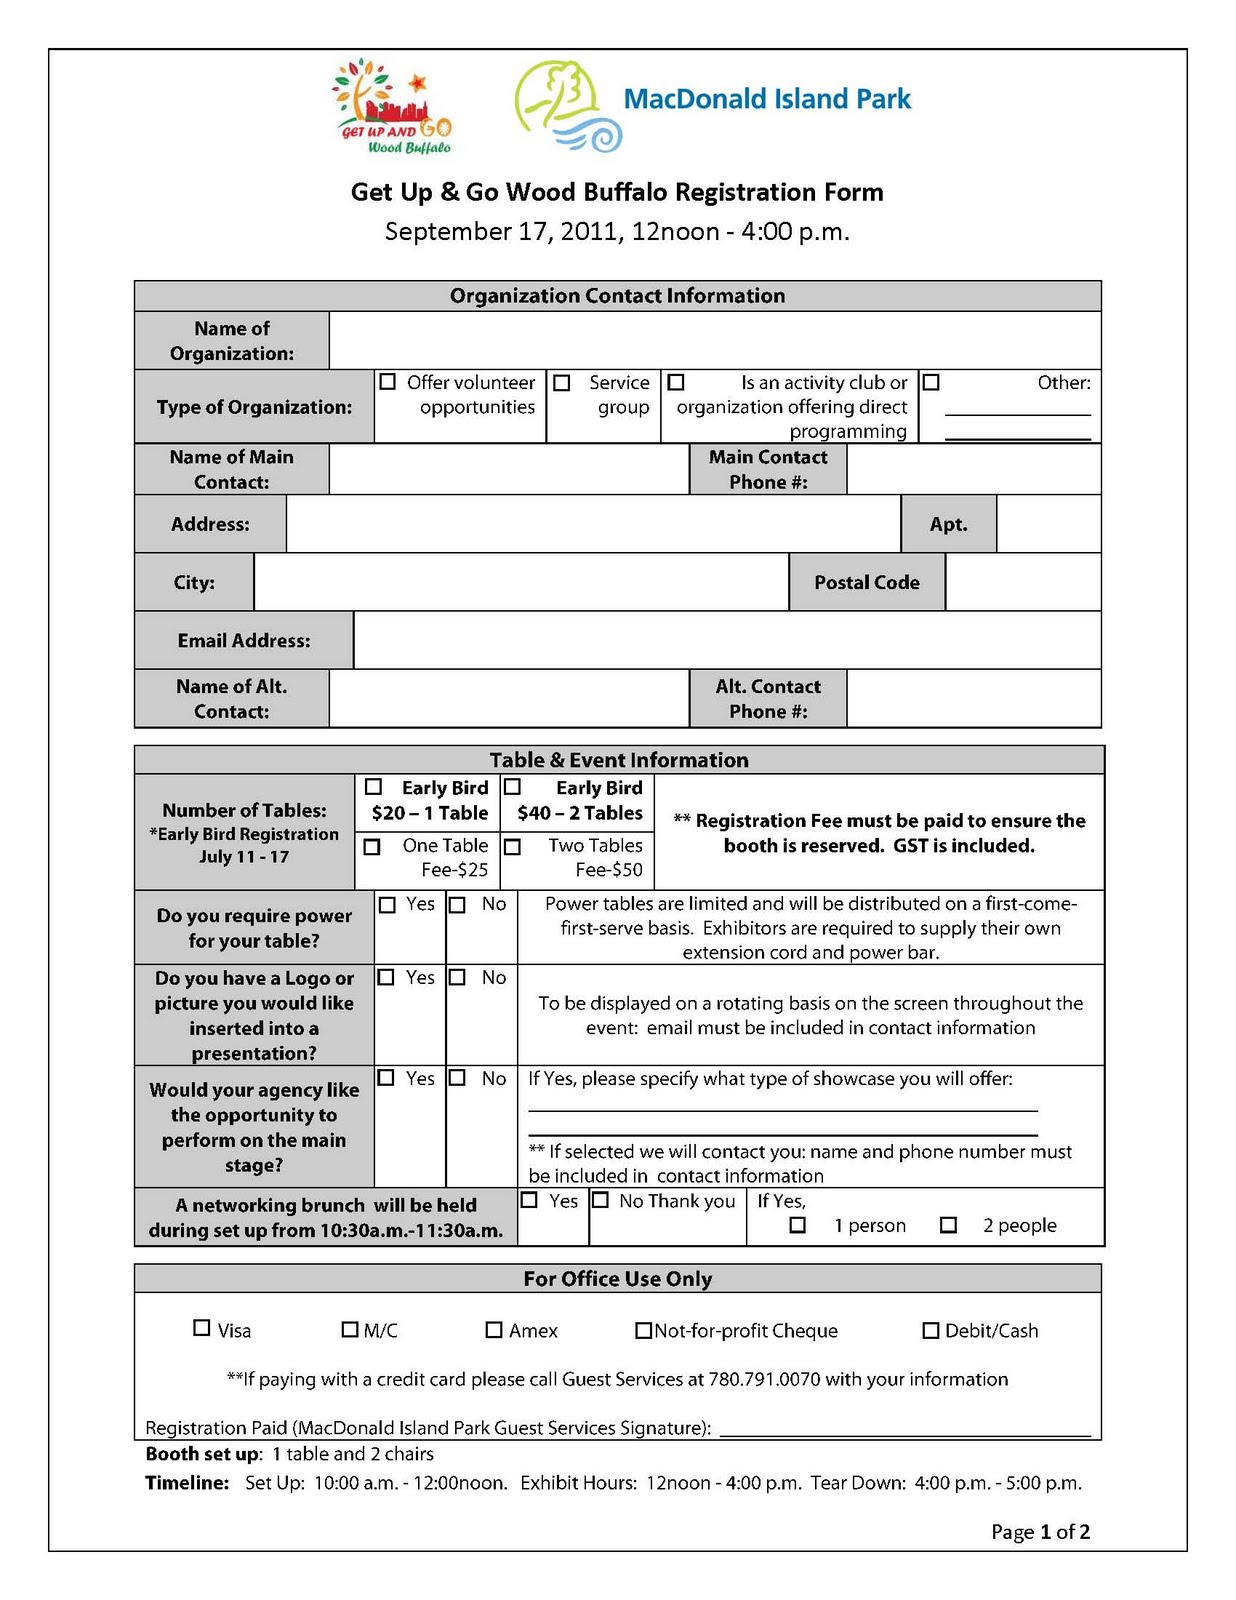 Fantastic 1 Round Label Template Tiny 1 Year Experience Resume In Java J2ee Rectangular 10 Best Resume Samples 10 Commandment Coloring Pages Young 100 Free Printable Resume Builder White1099 Employee Contract Template 2011 W 2 Form Pictures To Pin On Pinterest   PinsDaddy